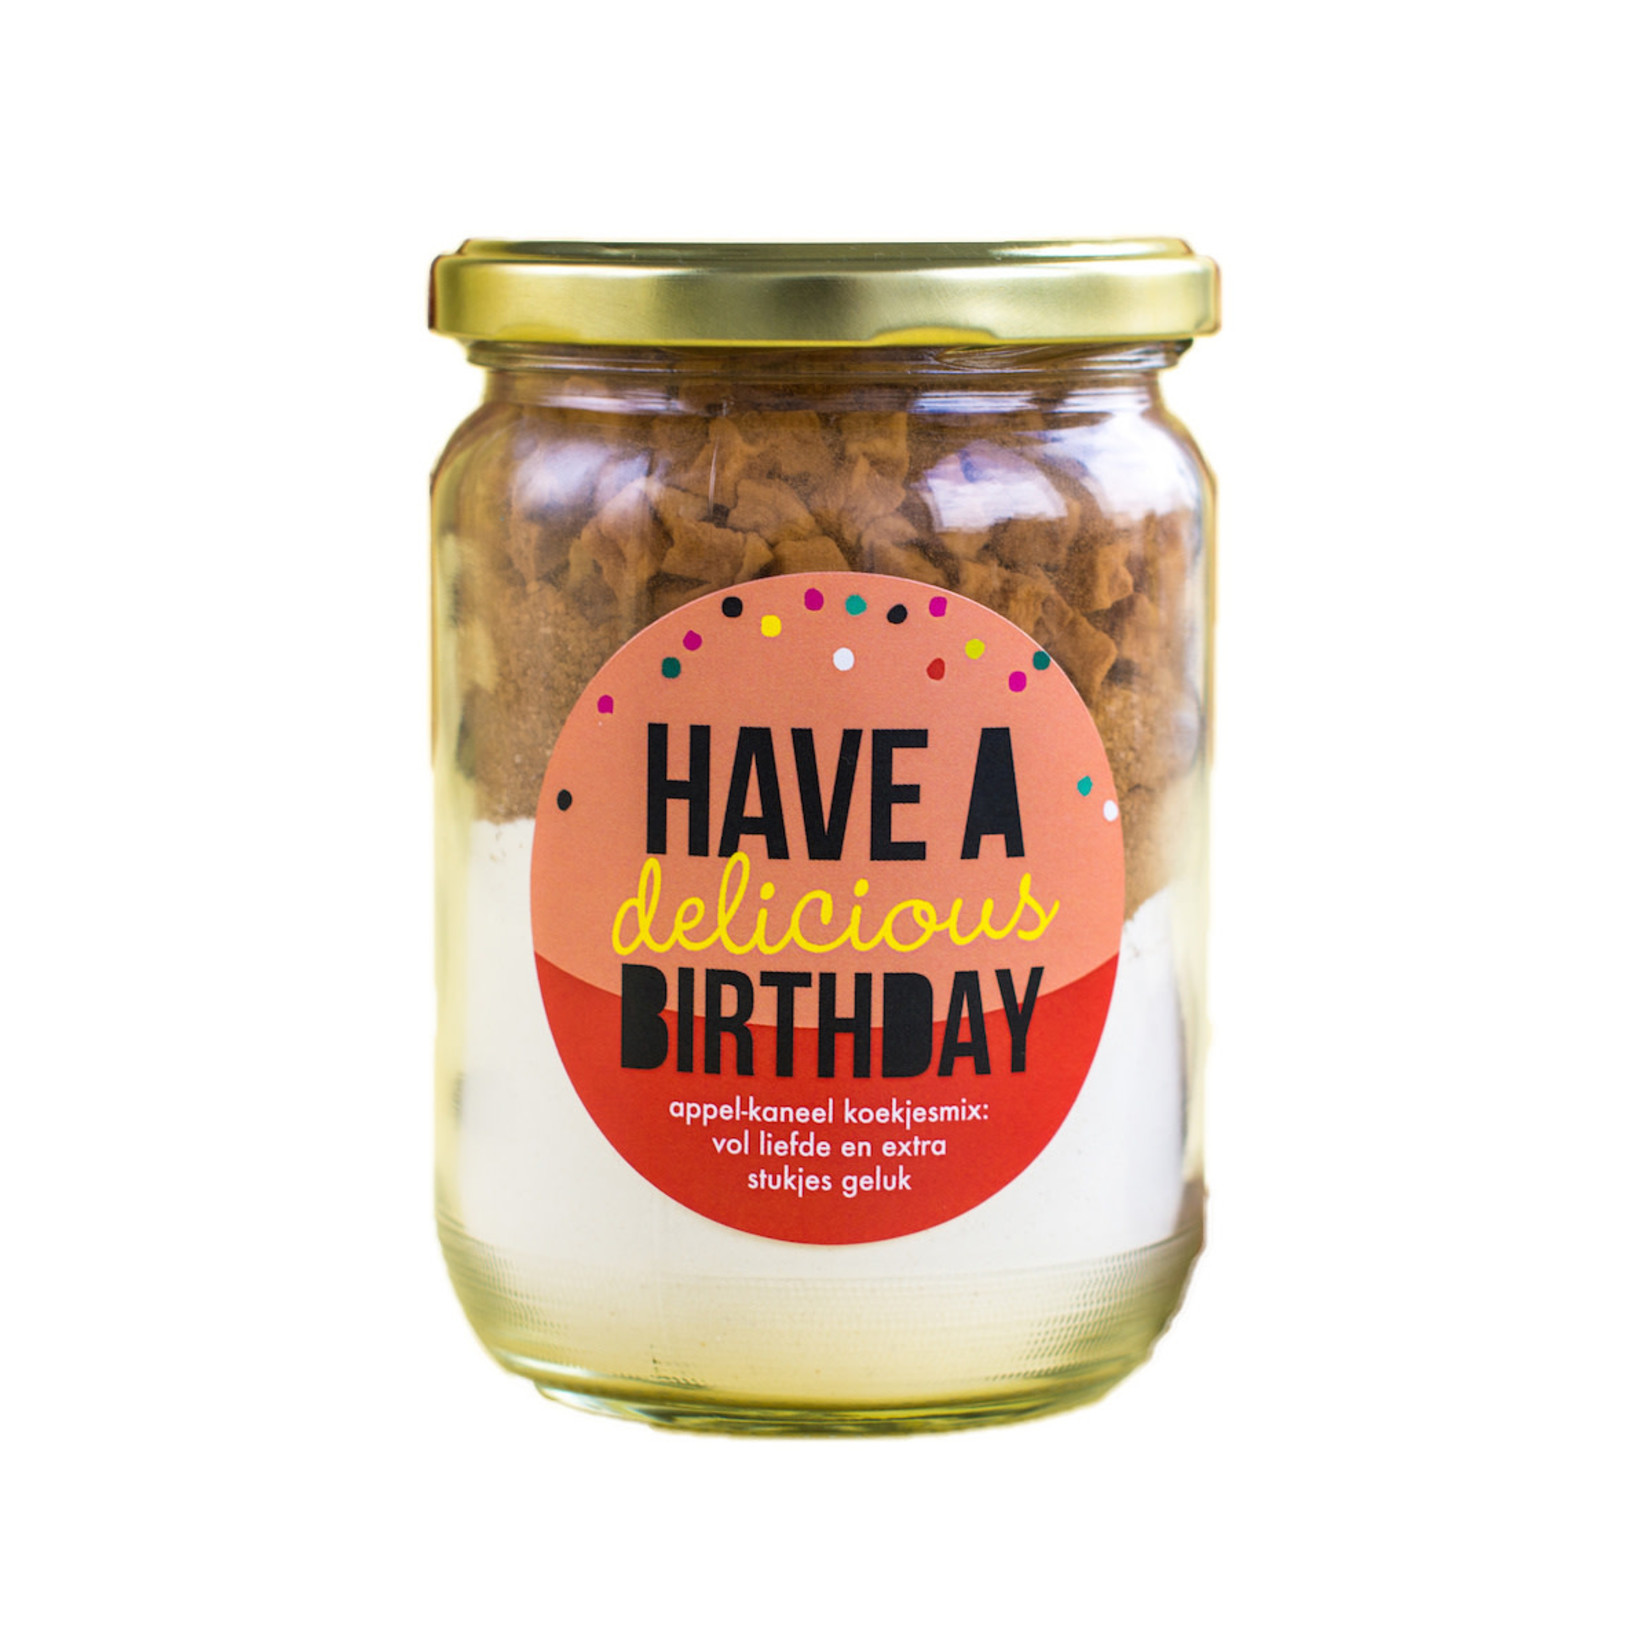 Pineut Koekjesmix | Delicious birthday | Pineut